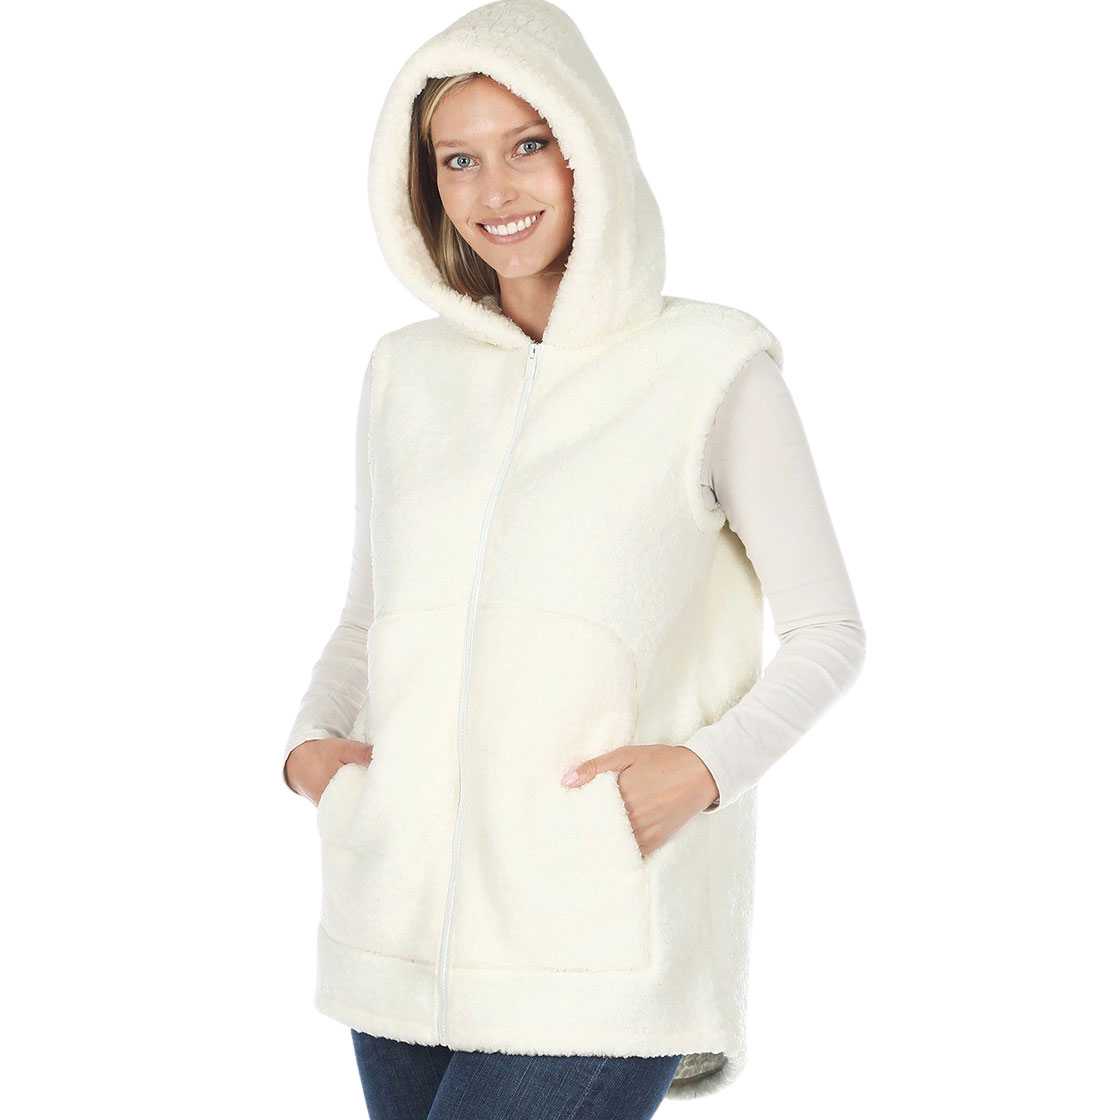 Vest - Sherpa Hi-Low Hooded Vest with Pockets 2865 - Ivory Vest Sherpa High-Low Hooded Vest with Pockets 2865